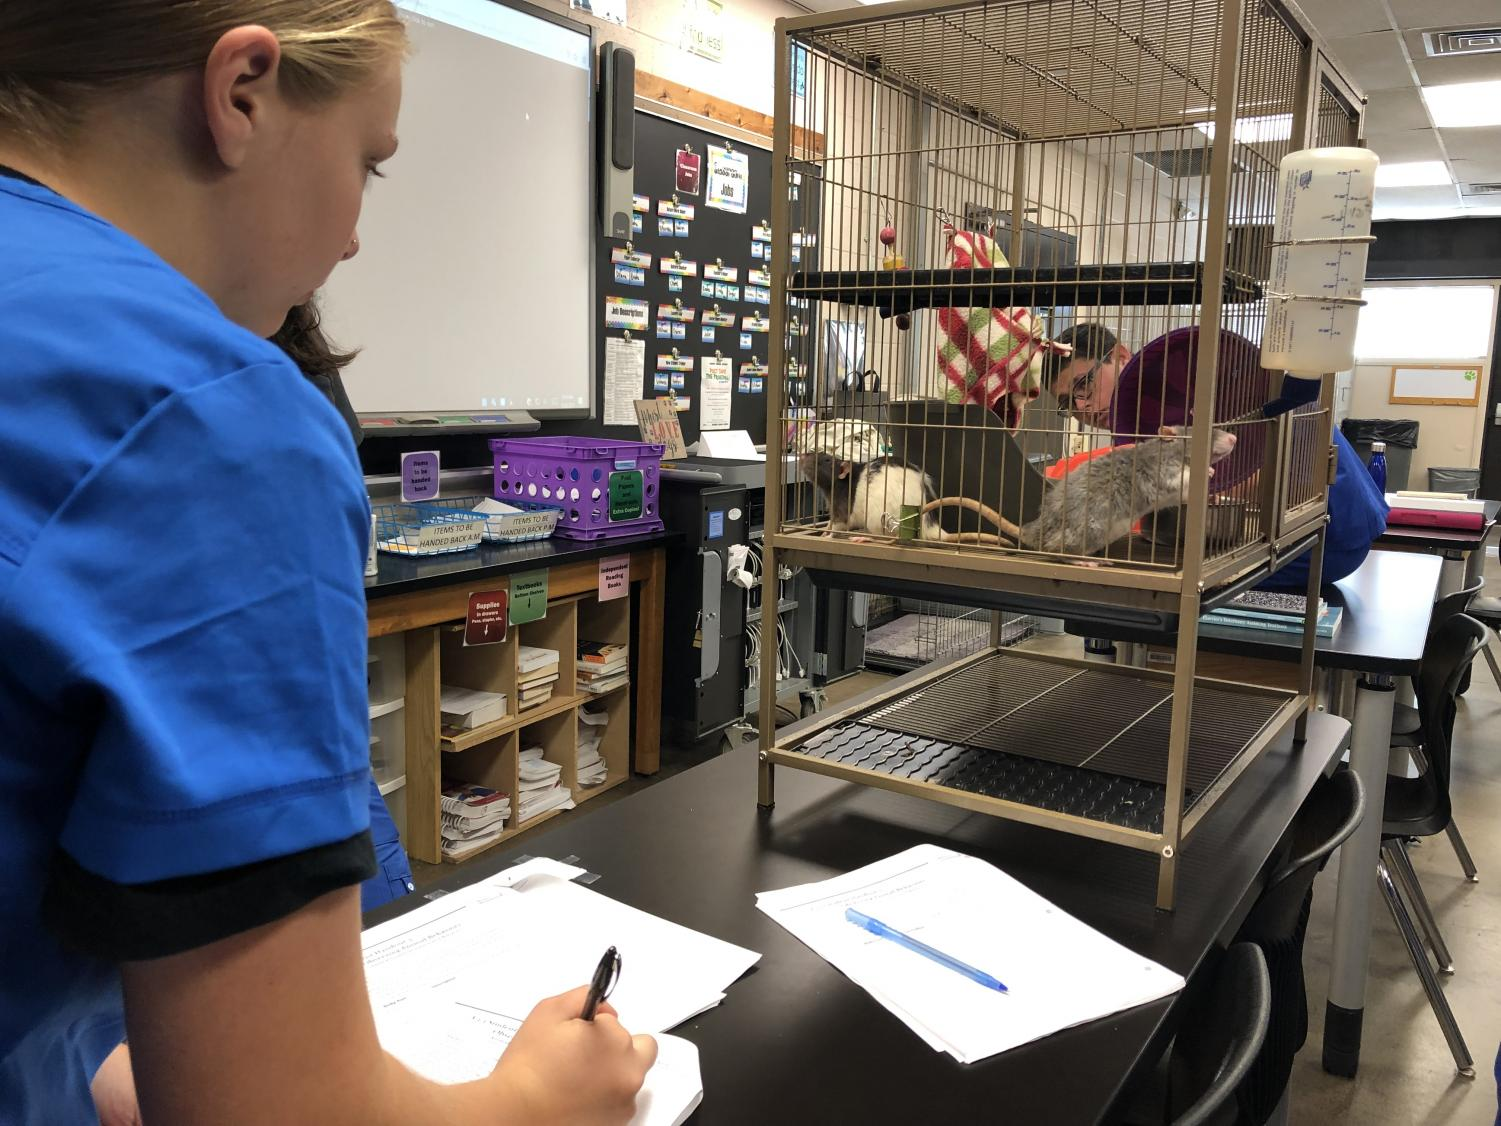 Students will the BOCES Animal Science program get up close and personal with all kinds of animals in order to better understand their care and development. For those interested in veterinary science, grooming, rescues, this is the program for you.